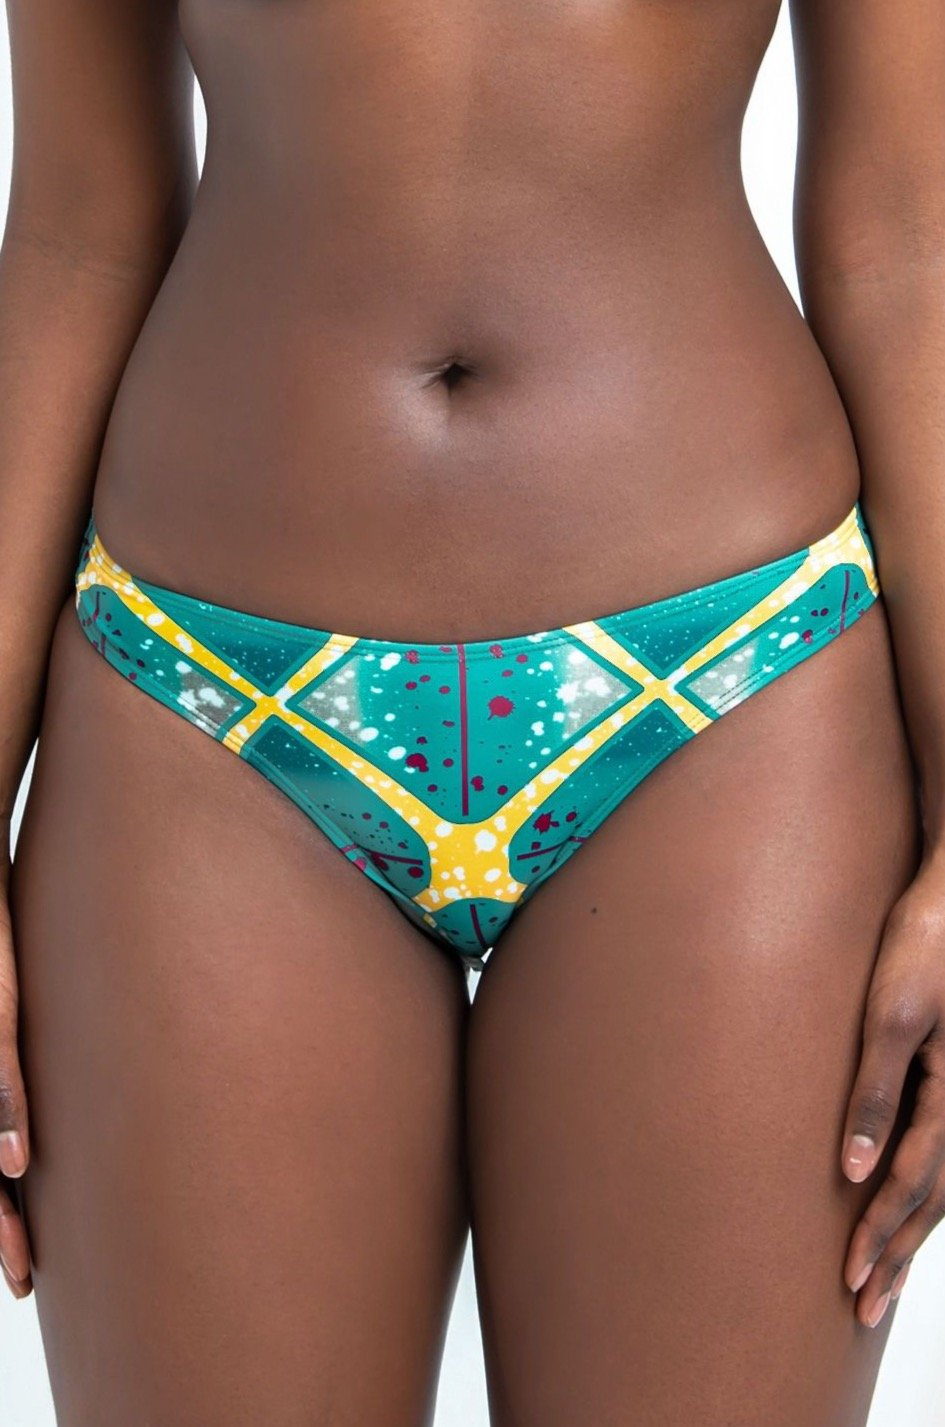 DEKA swimsuit bottom